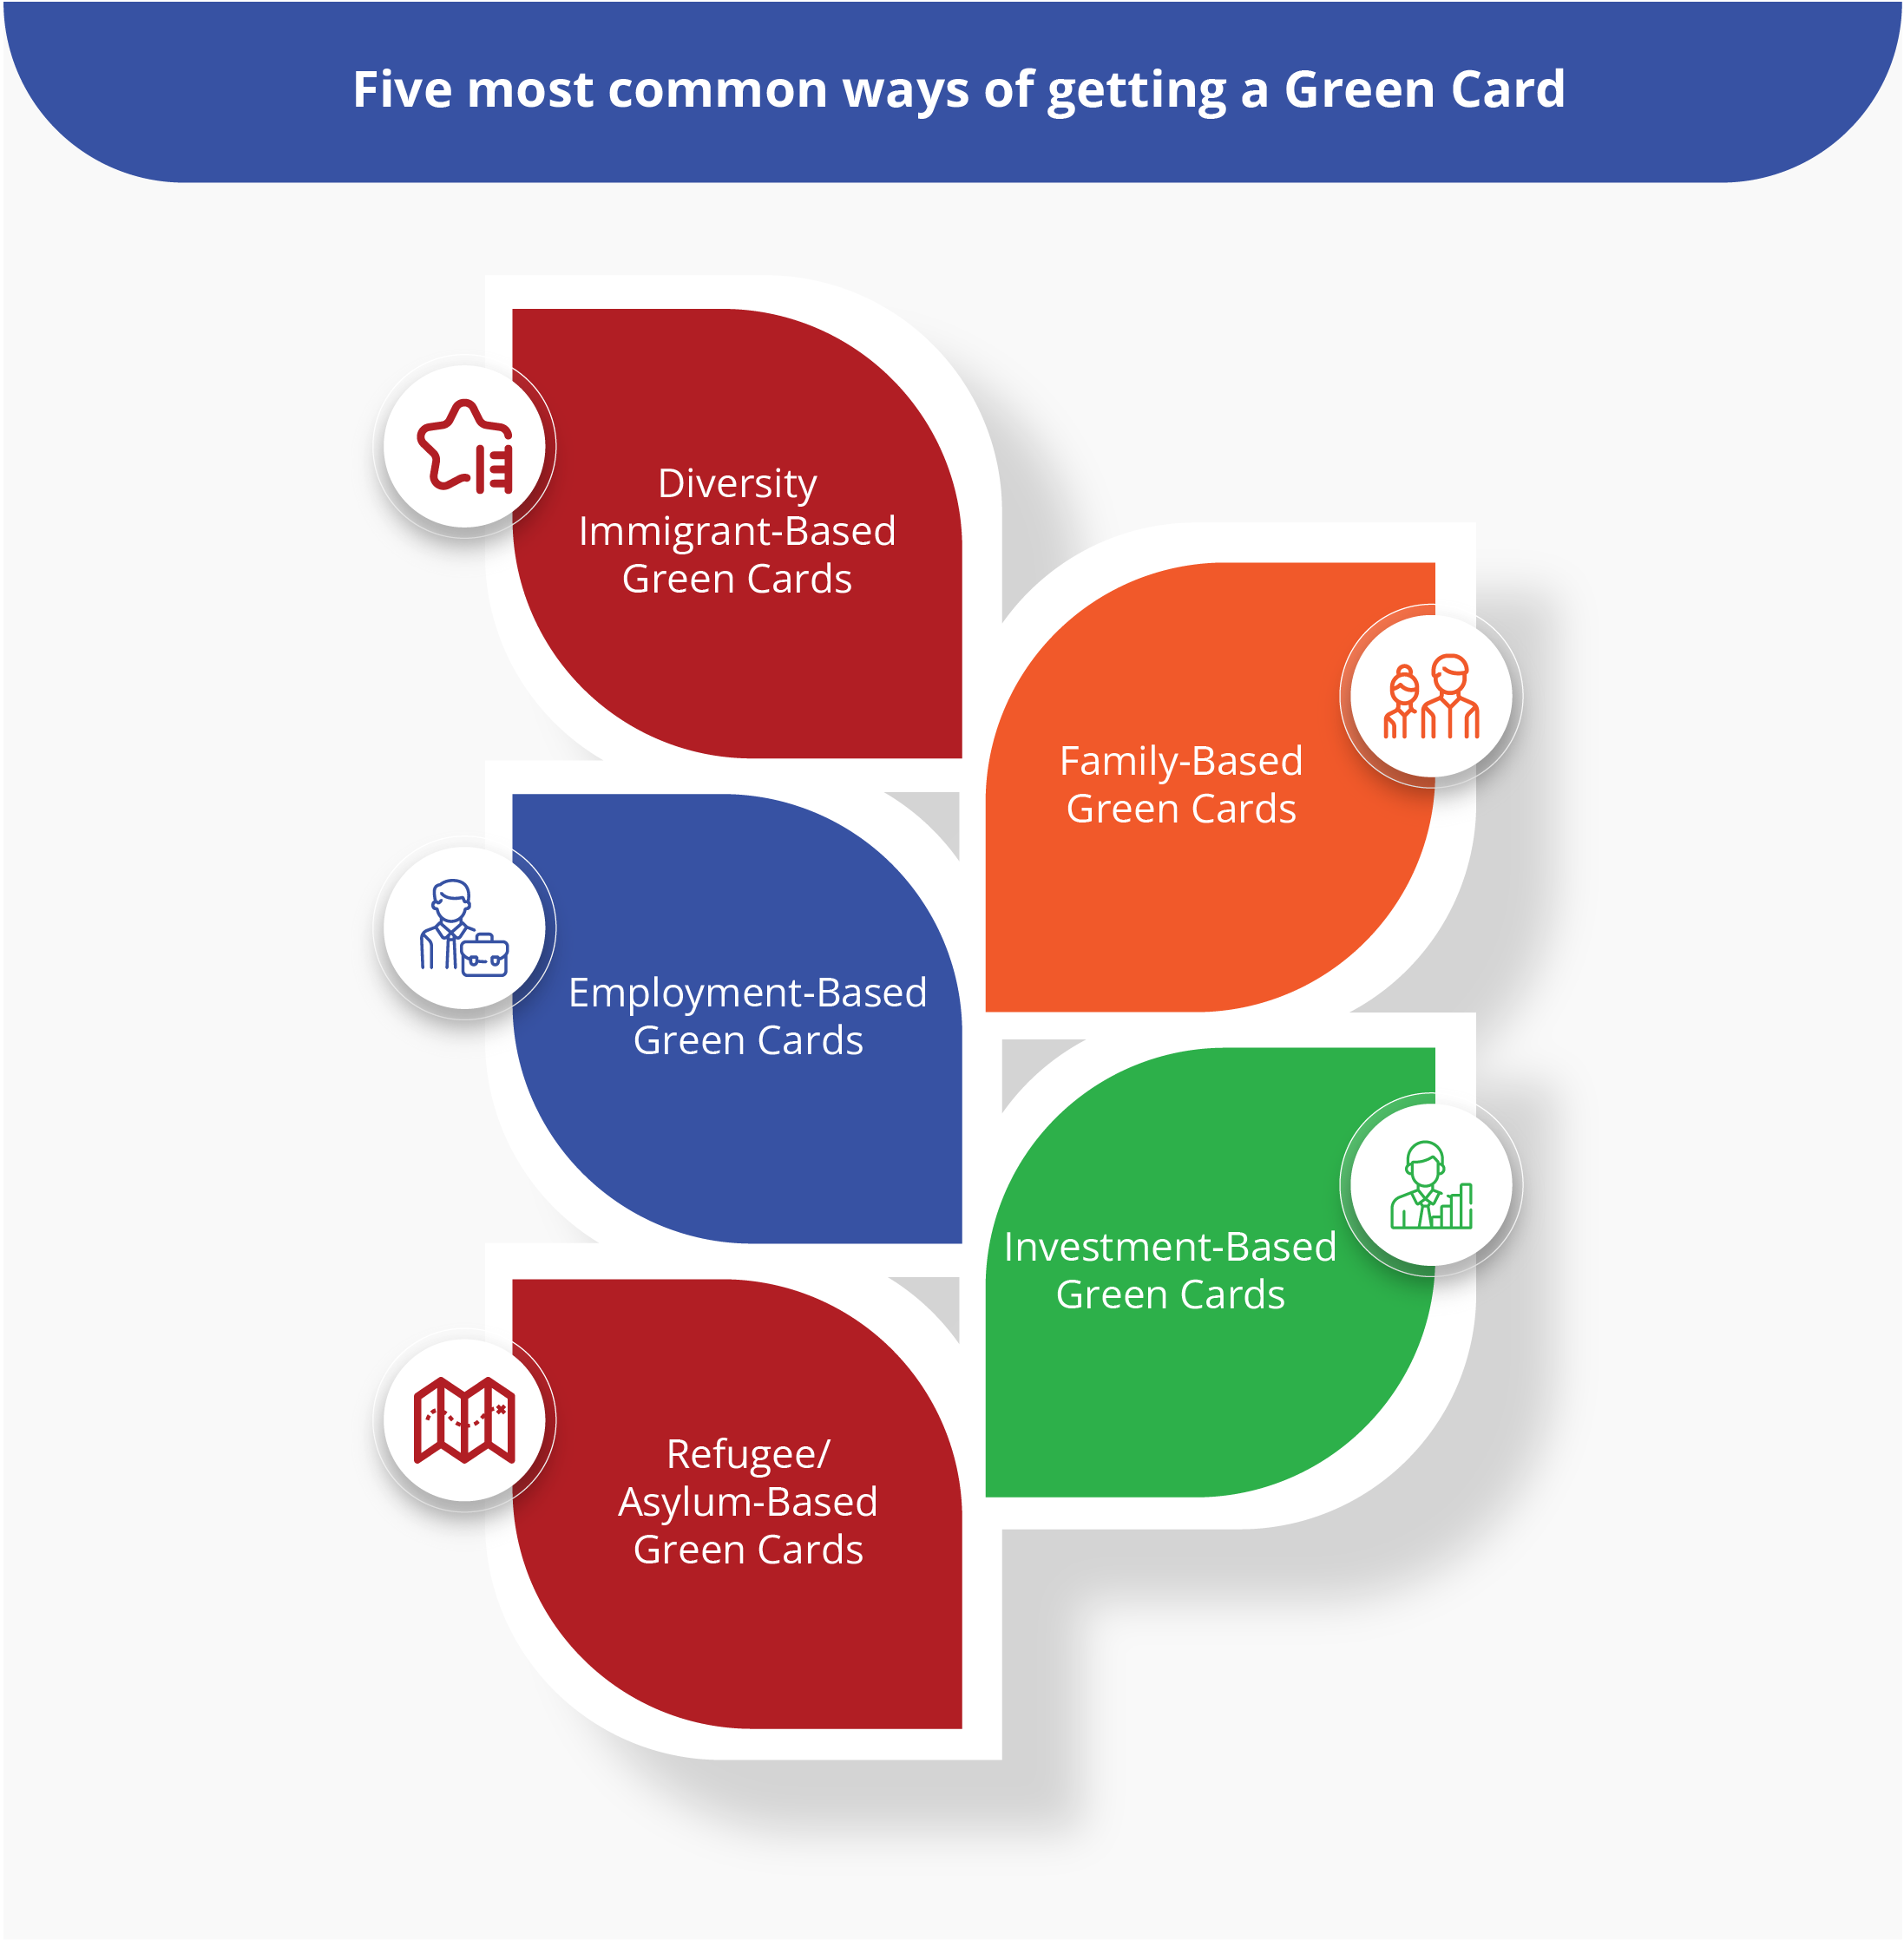 Five most common ways of getting a Green Card